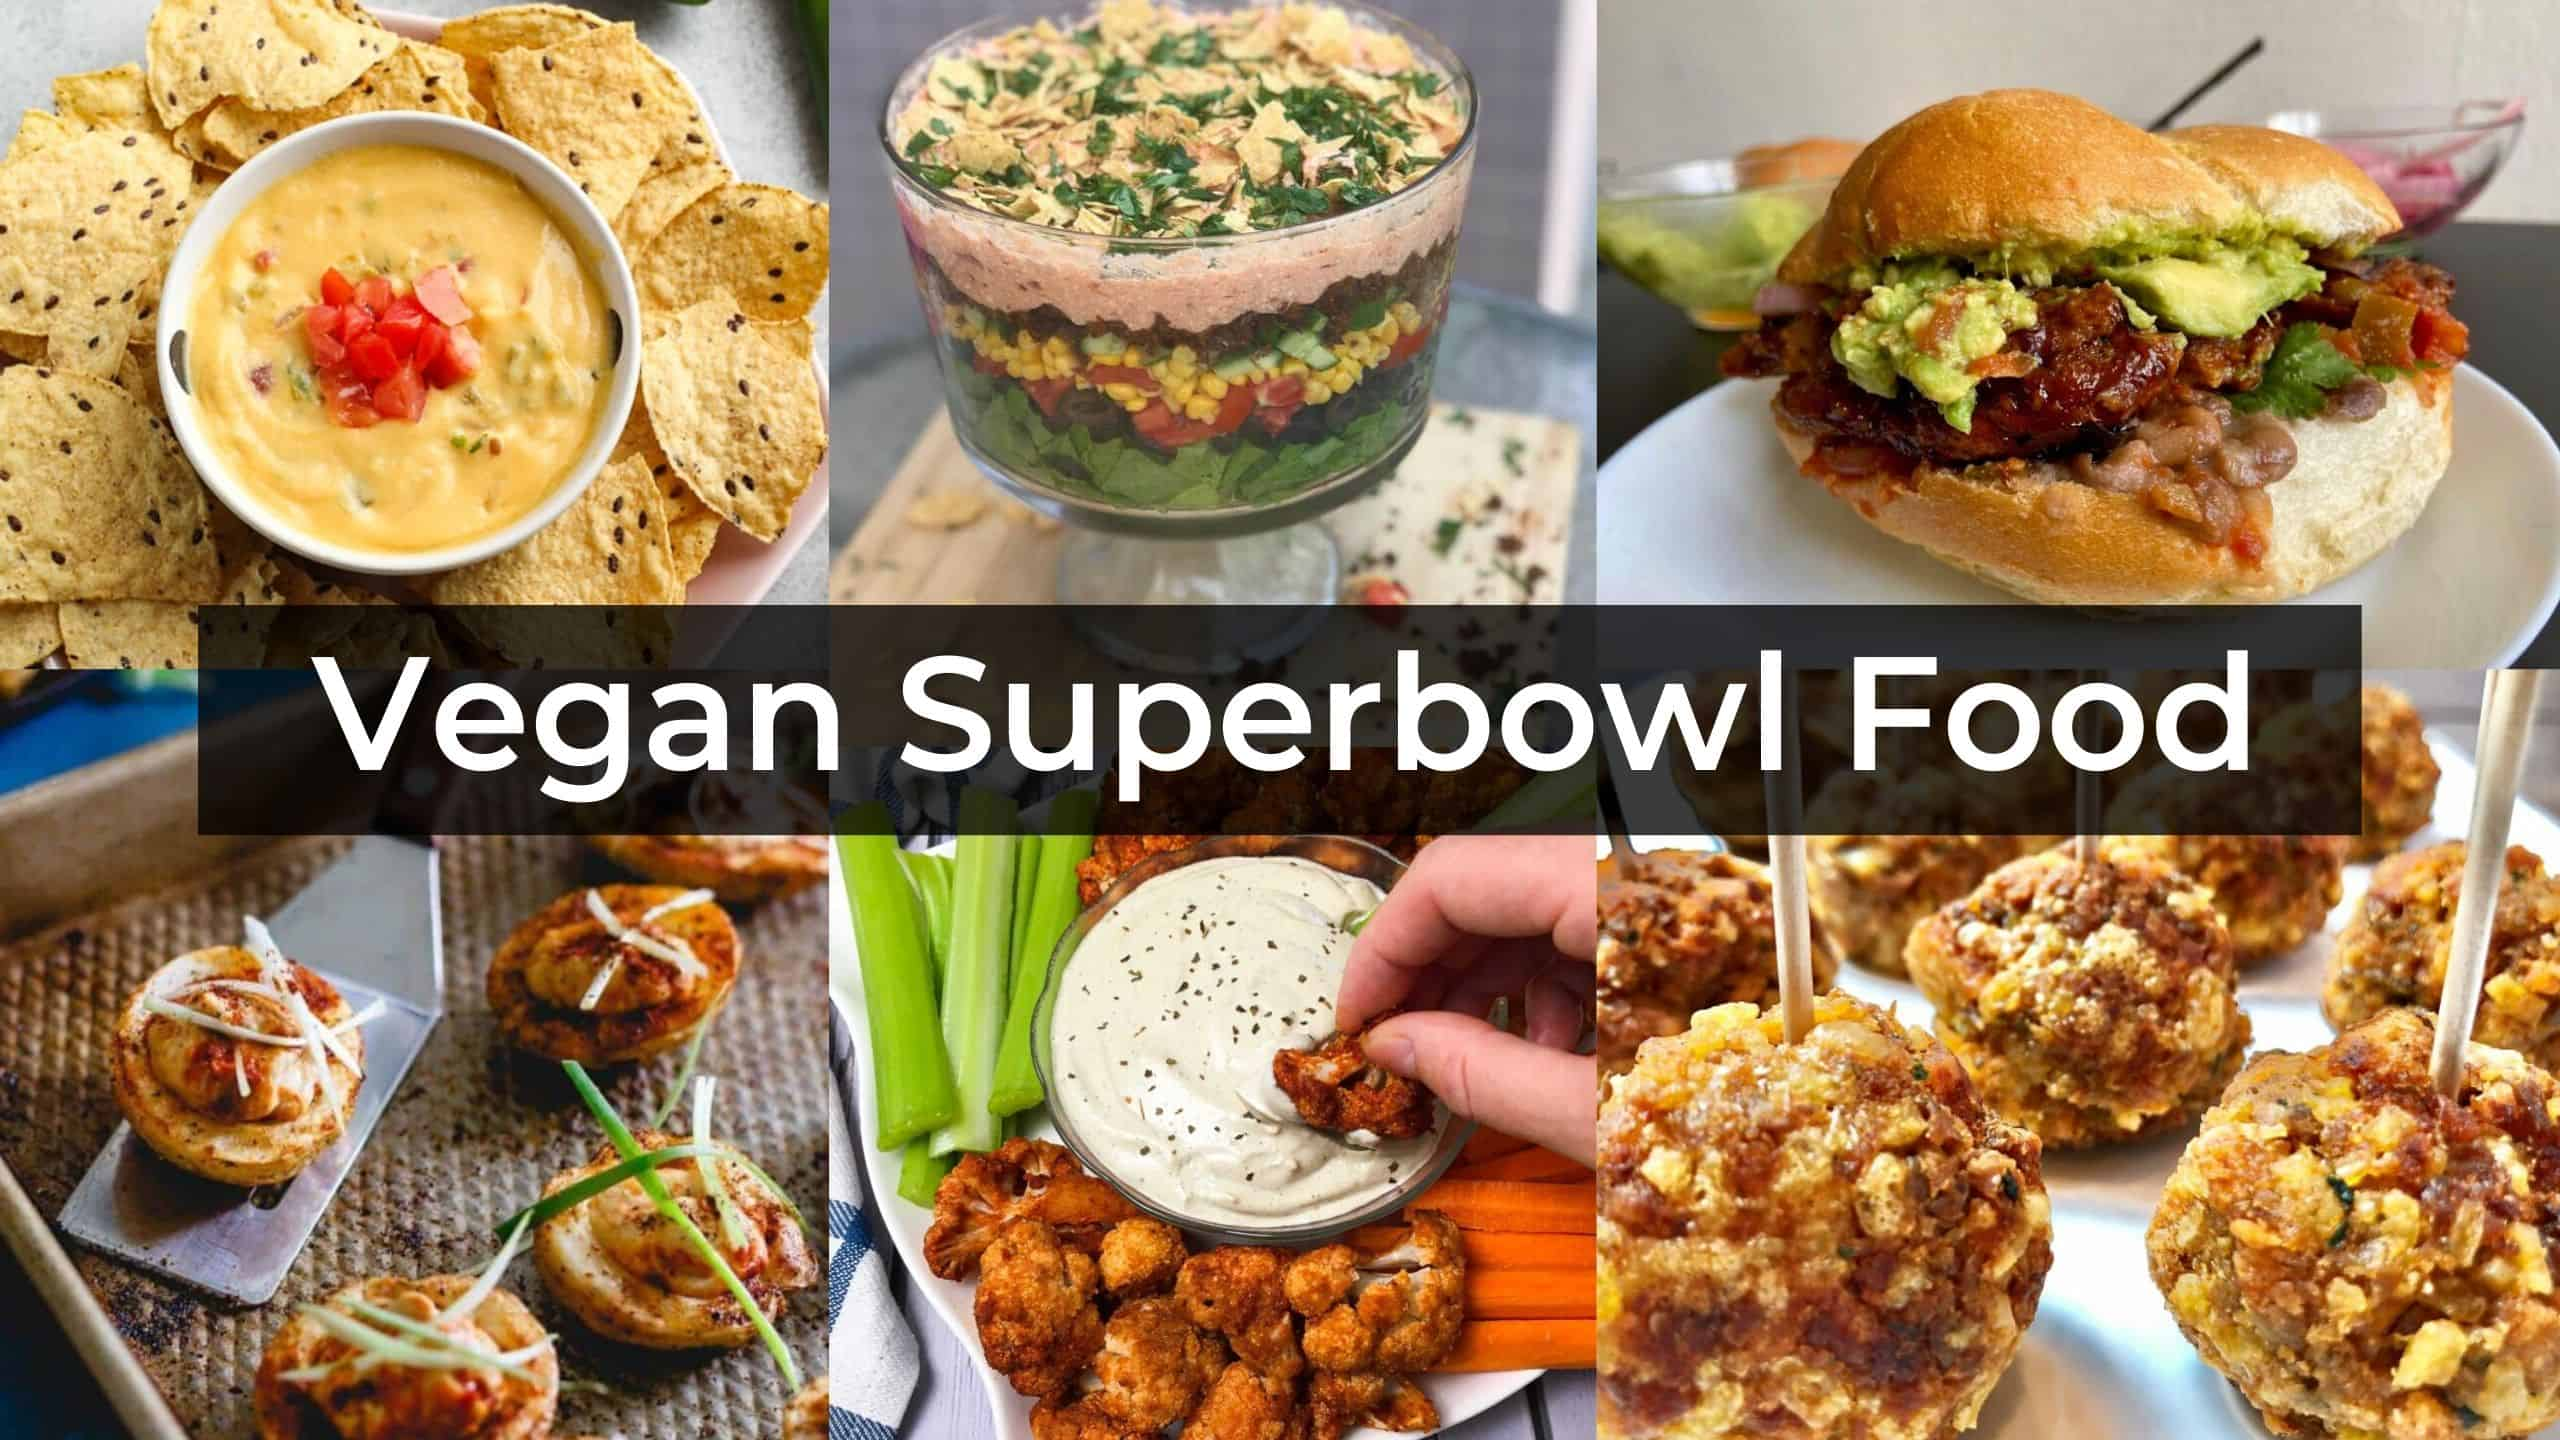 Vegan Superbowl Food – 17 Amazing Recipes